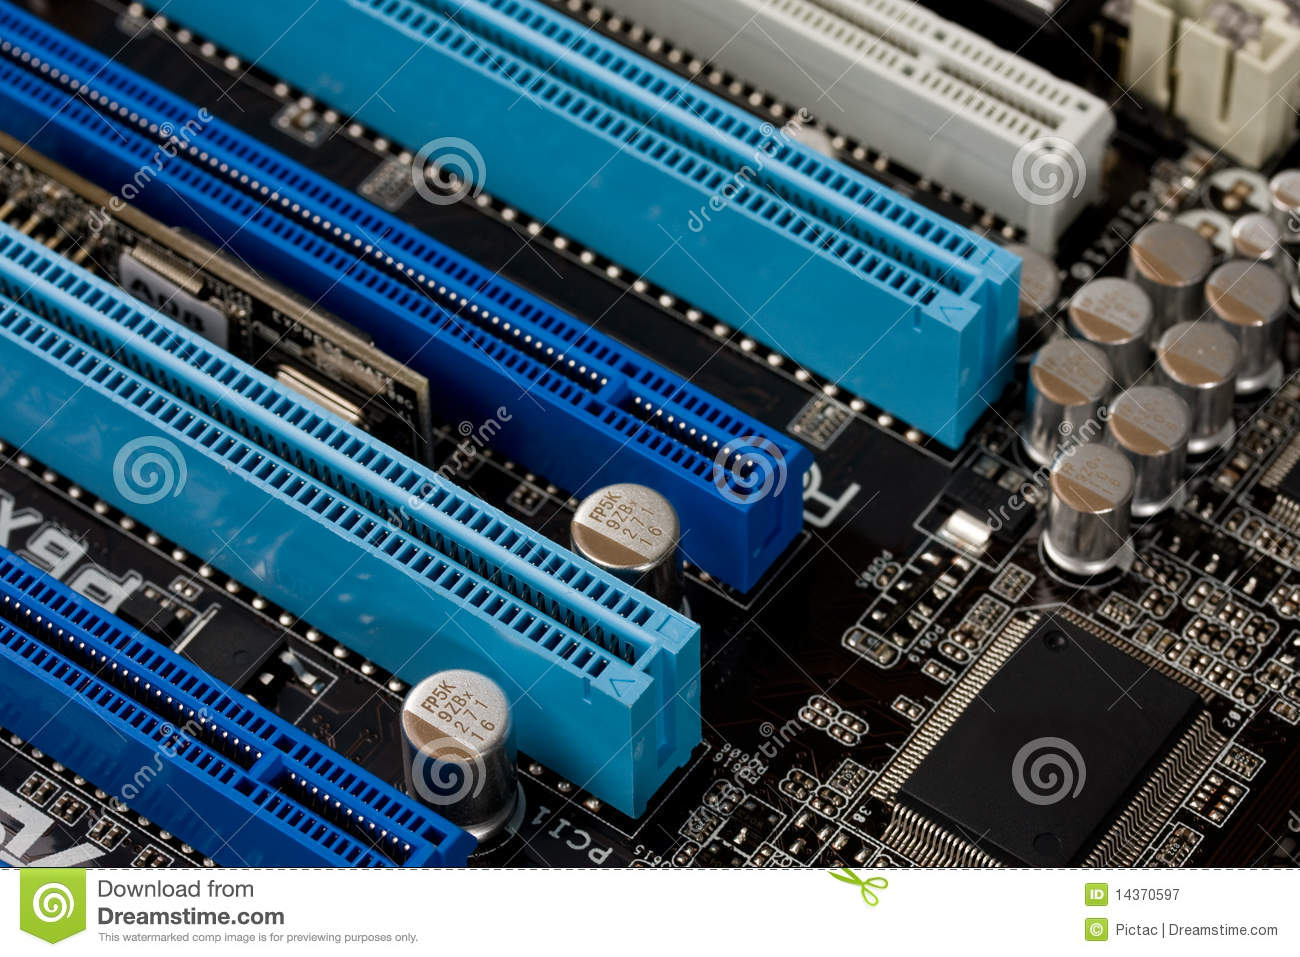 how to clear up computer memory